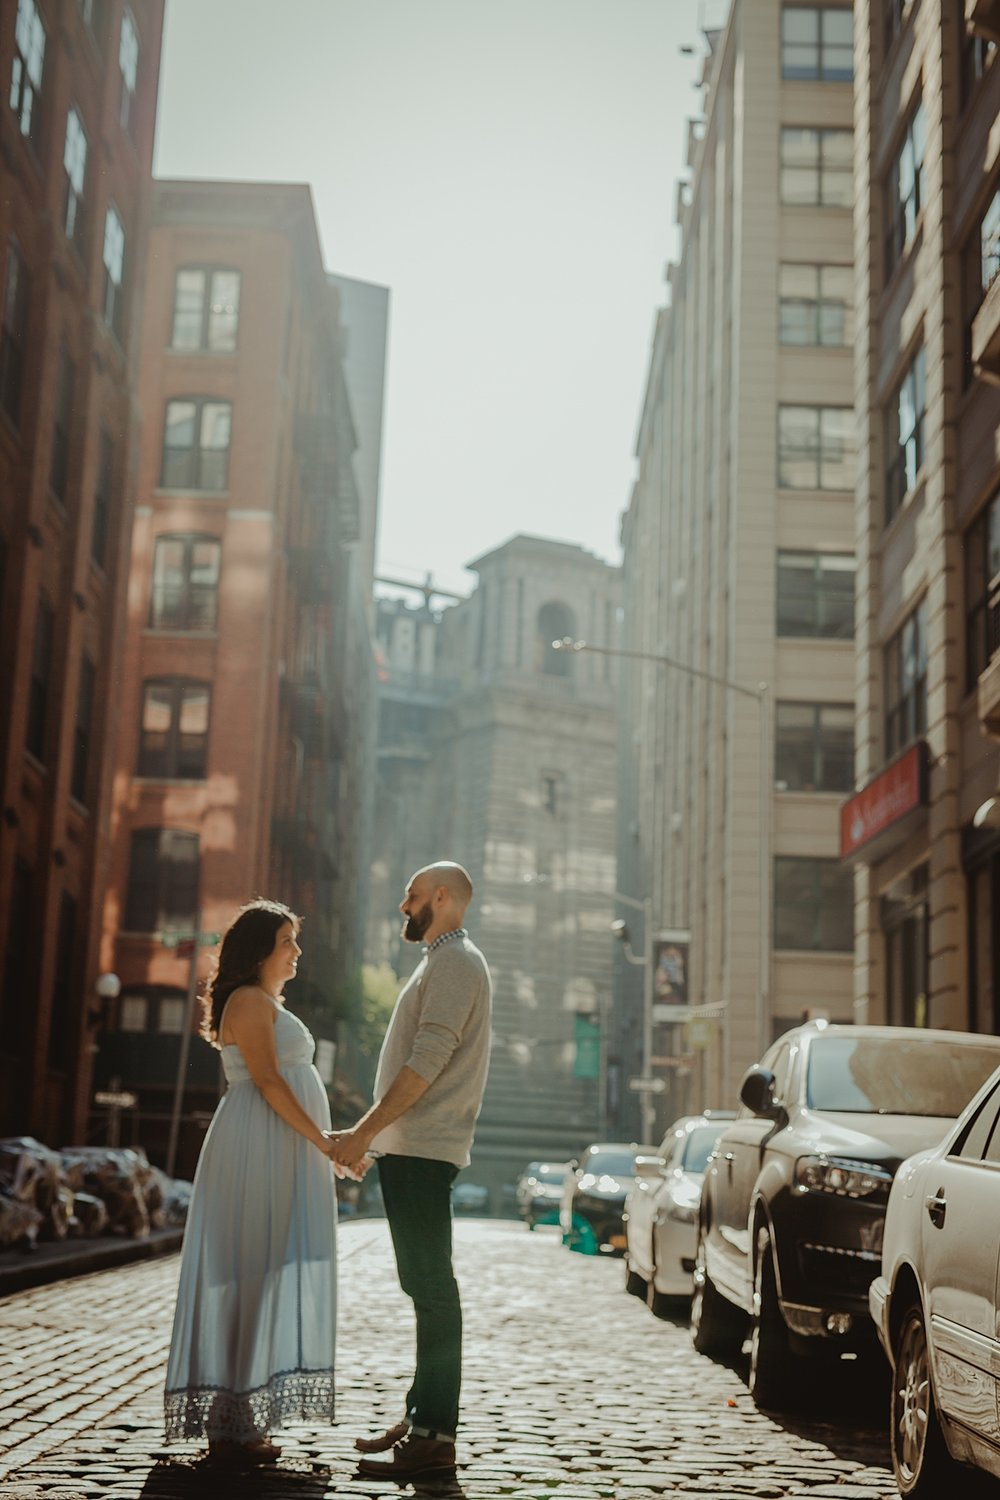 photo of expecting married couple standing on cobble stoned street and holding hands during outdoor maternity photo session with orange county family photographer krystil mcdowall photography